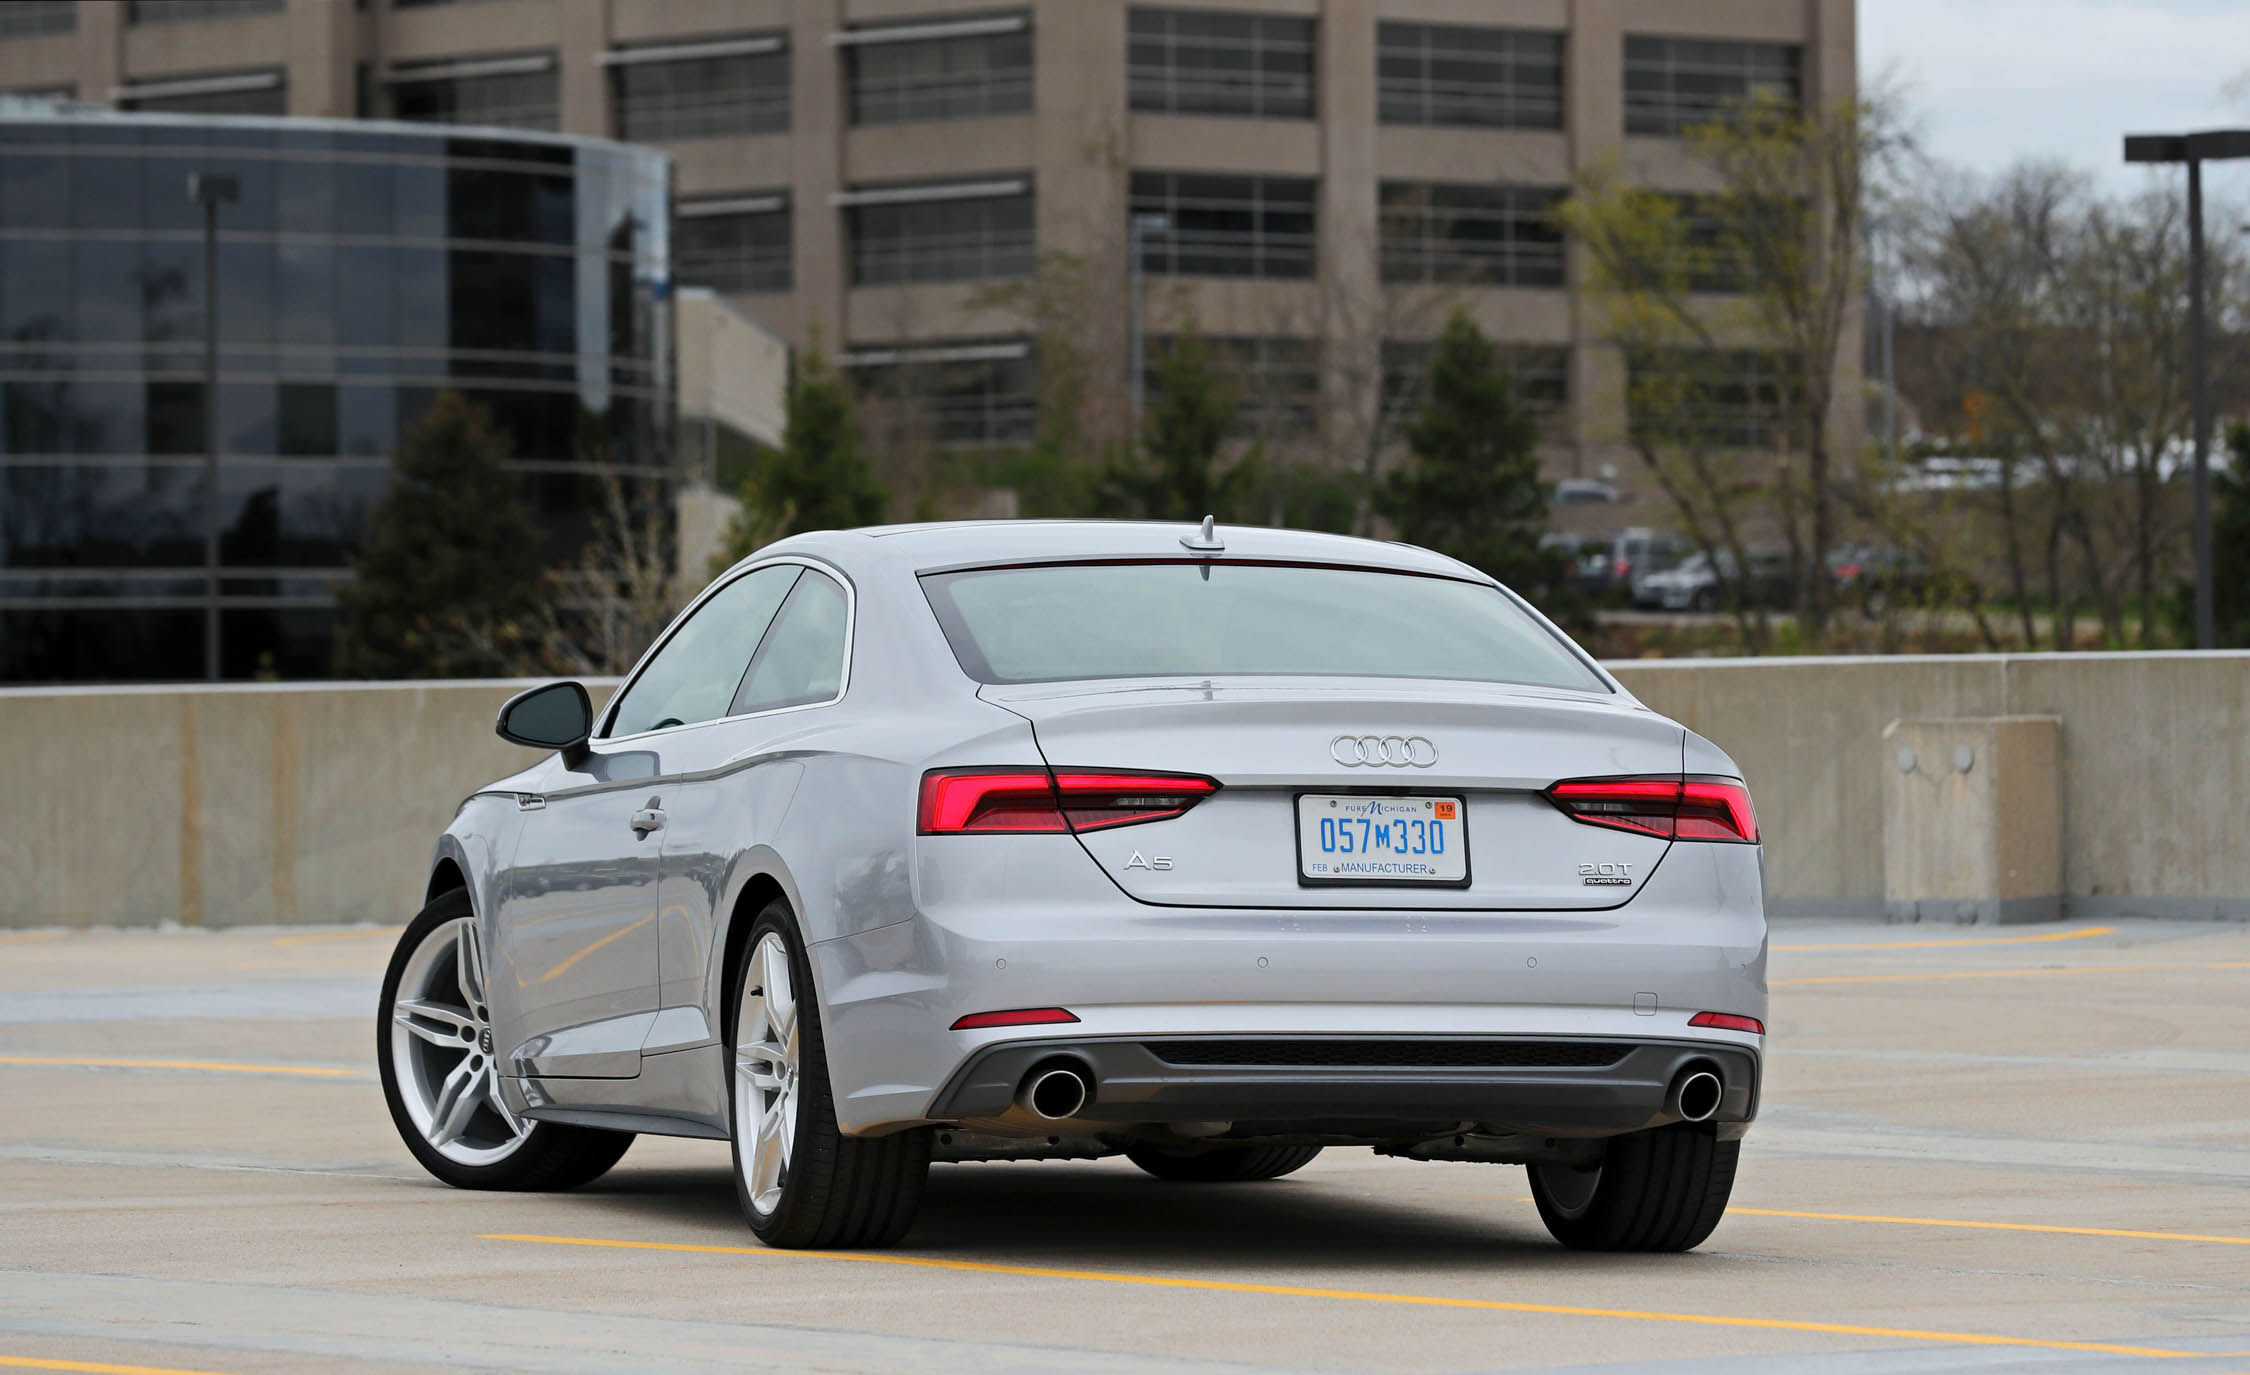 2018 Audi A5 Coupe Exterior Rear (Photo 4 of 50)